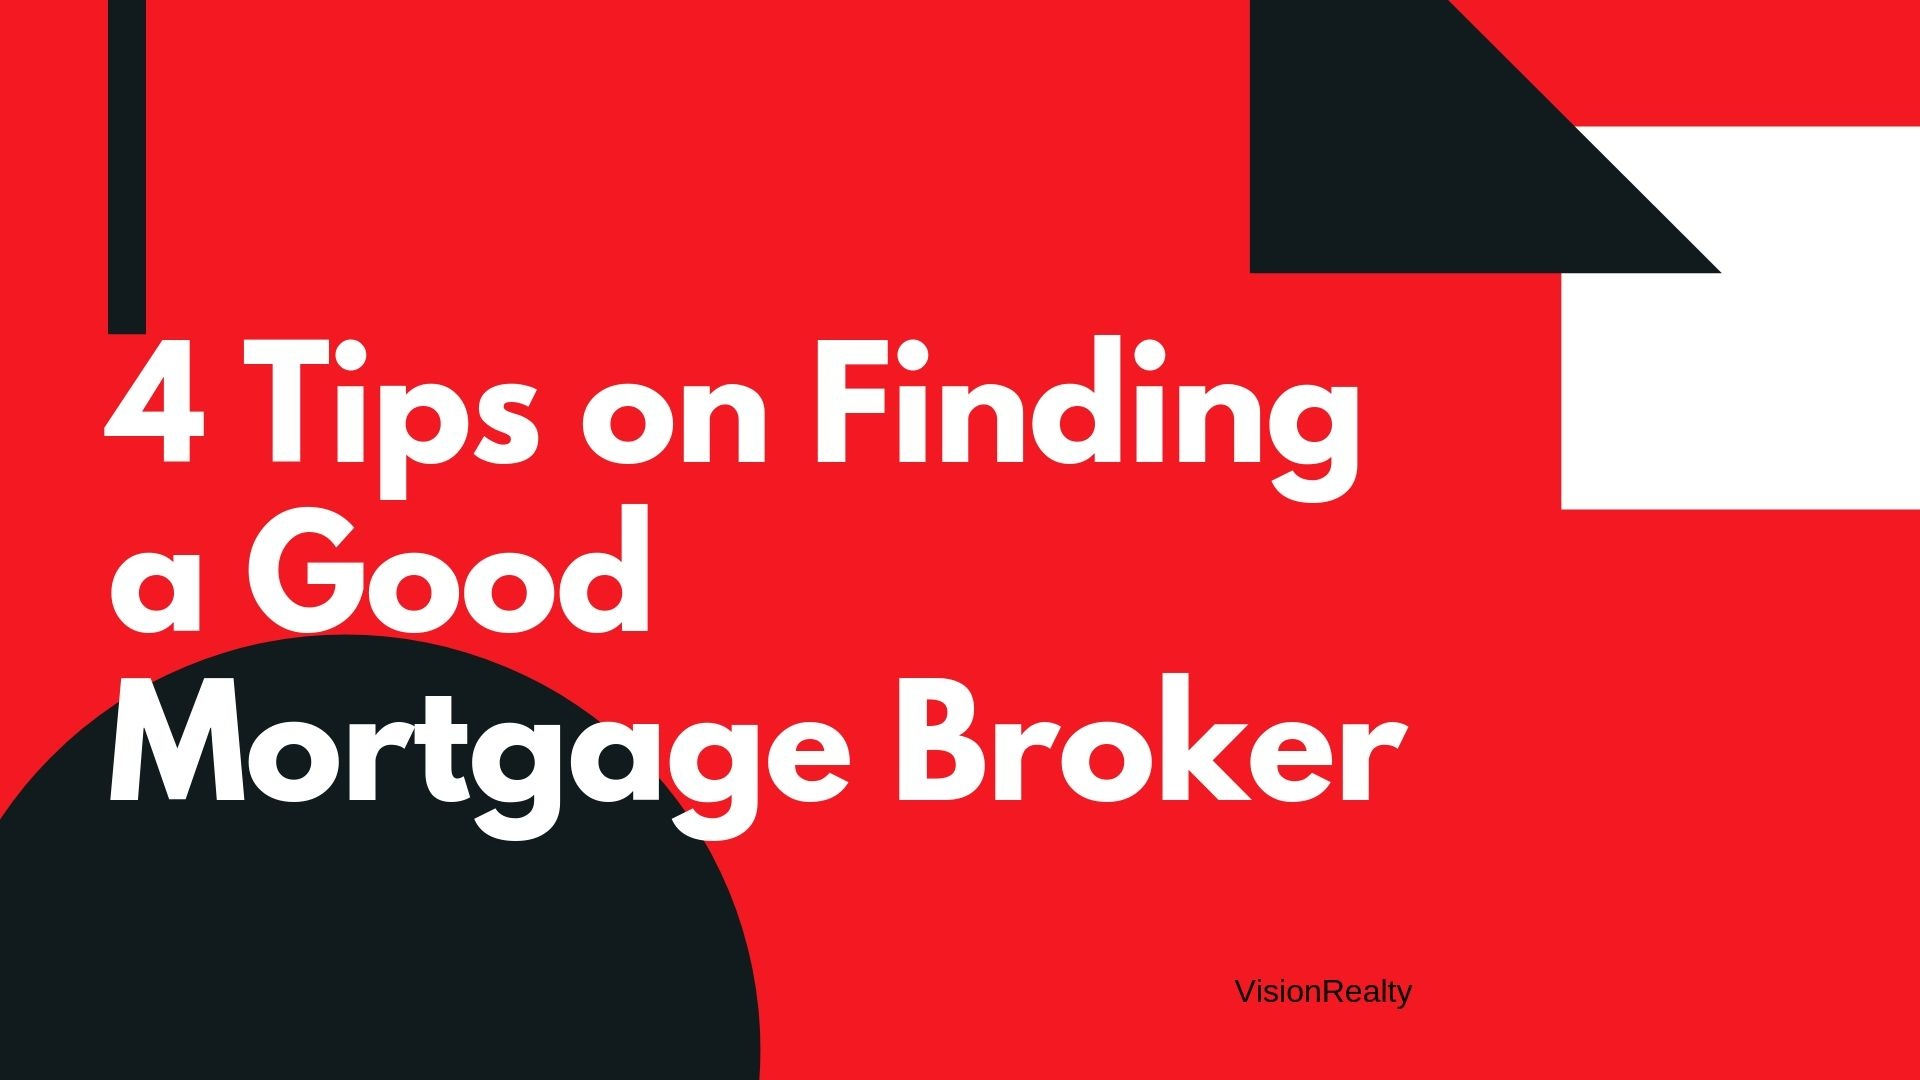 4 Tips on Finding a Good Mortgage Broker